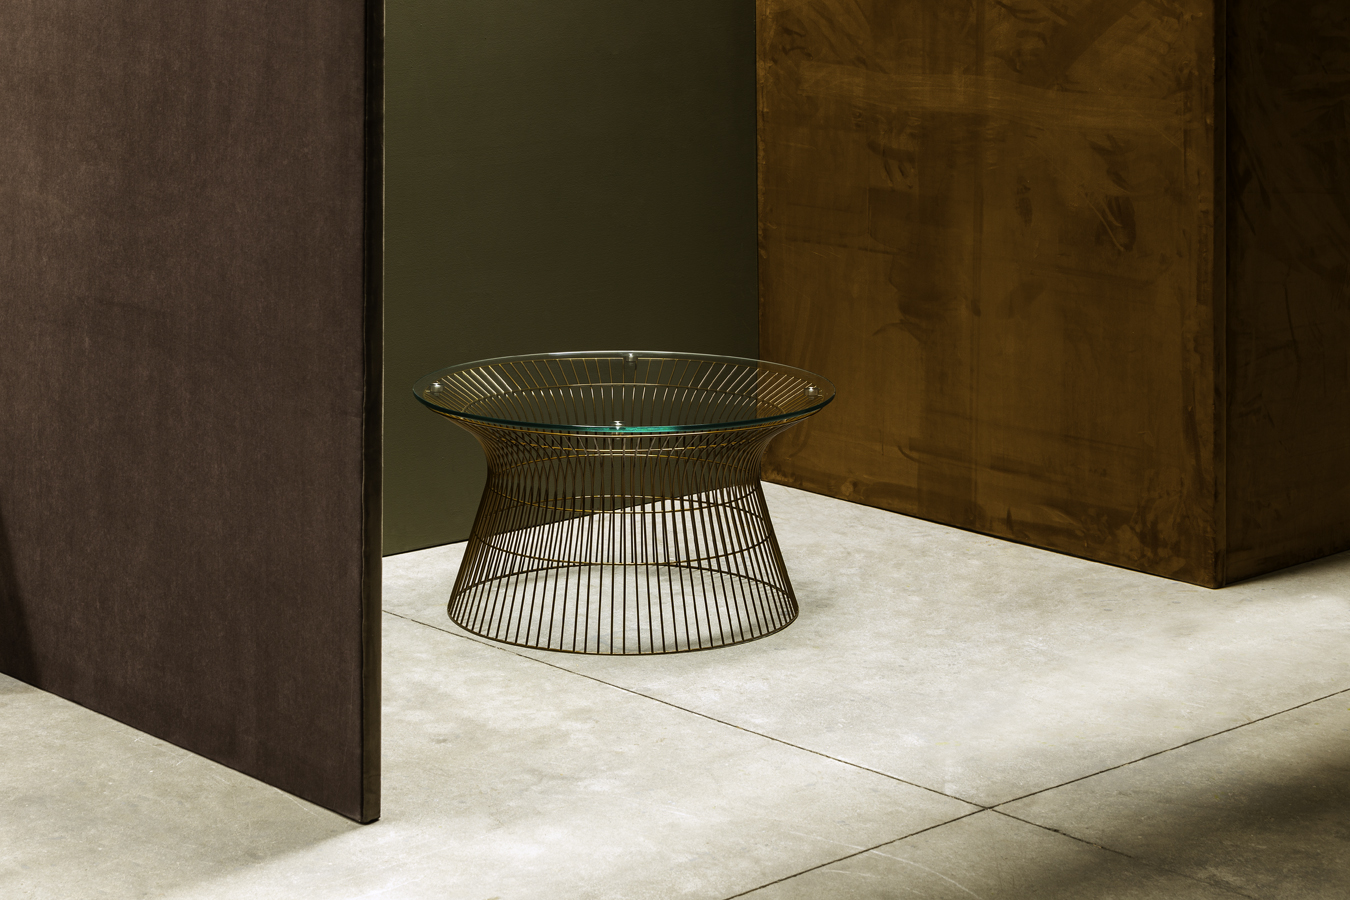 coffe_tables_cosmos_cocktail-l_hamilton_conte_galeria1.jpg